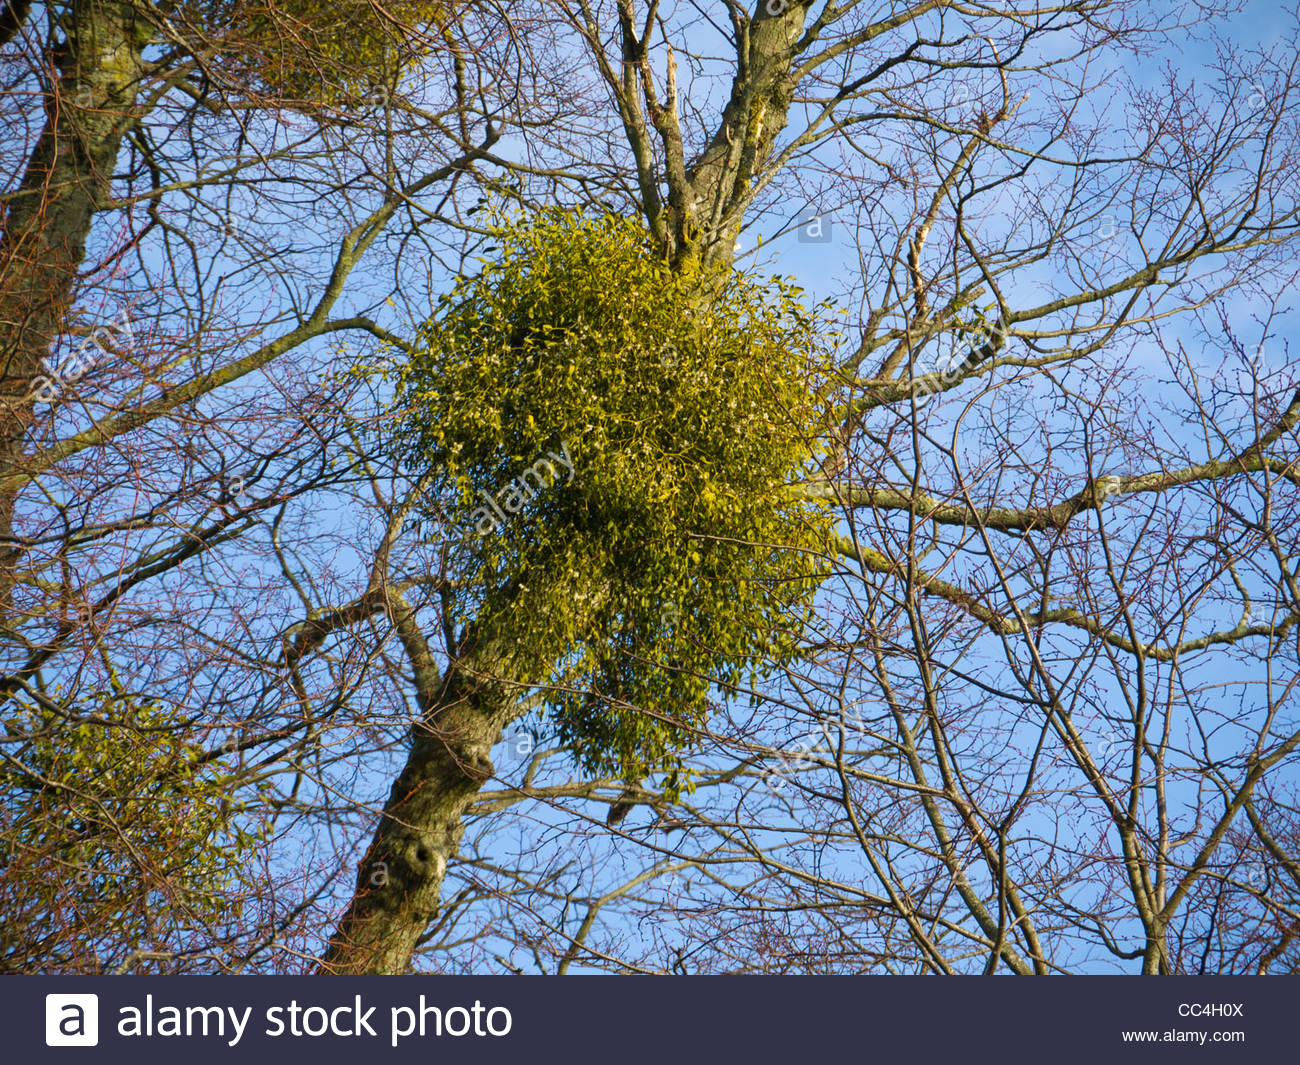 European mistletoe attached to Host Tree close up - Stock Image